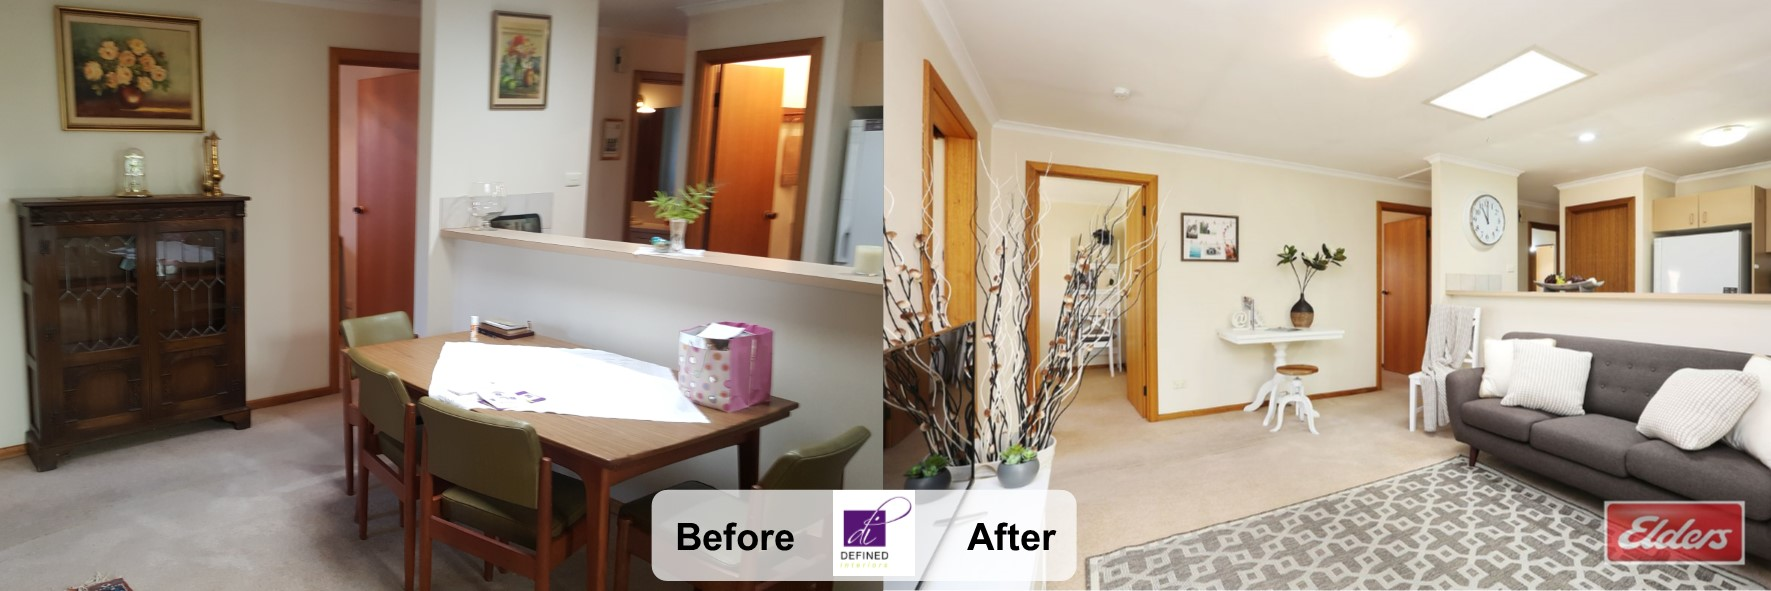 before-and-after3